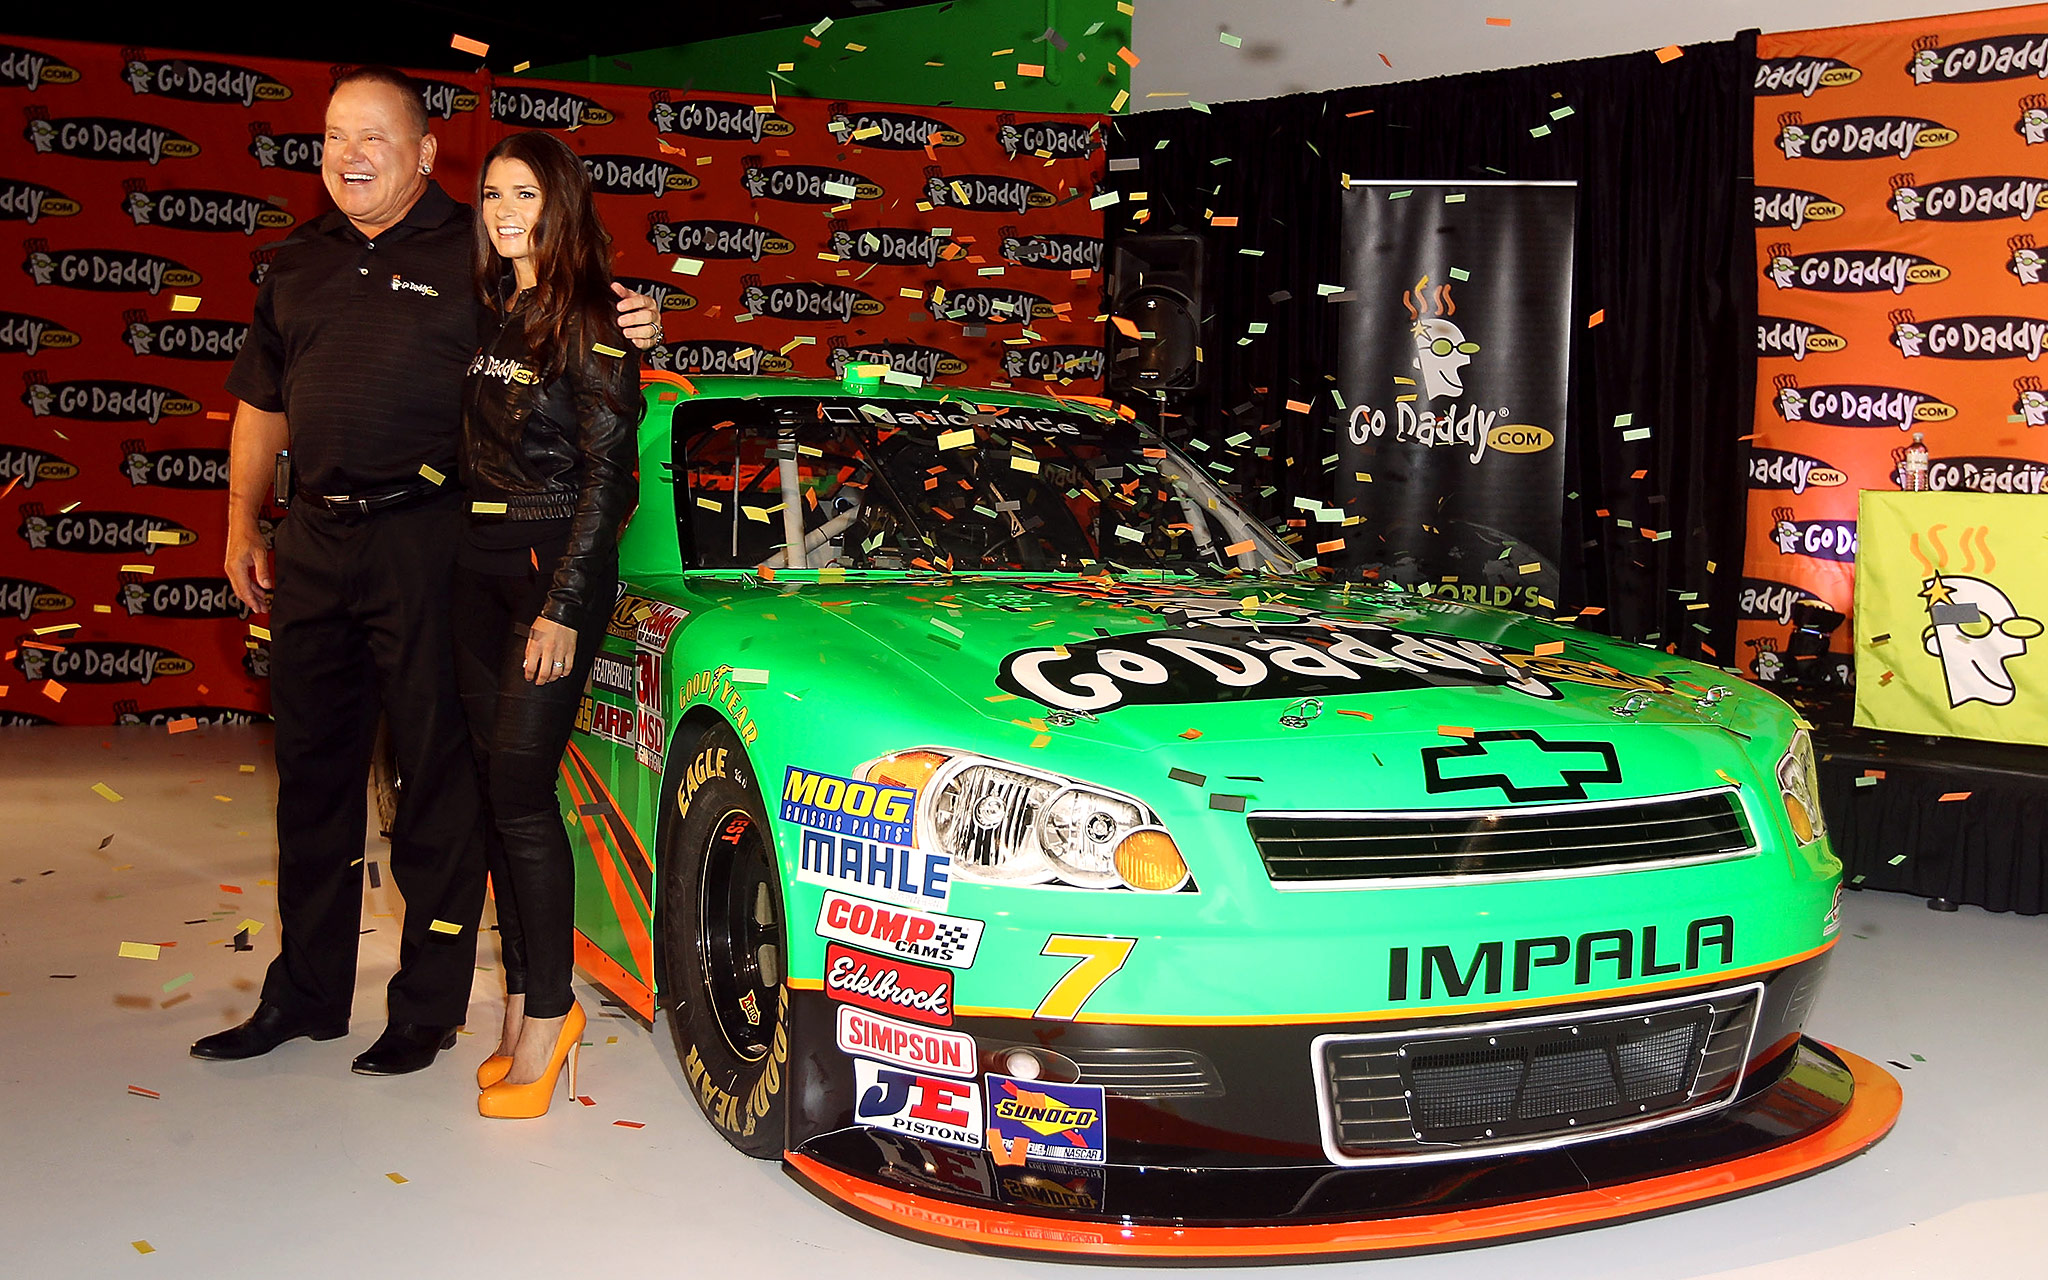 Pursuing Perfection: Danica Patrick